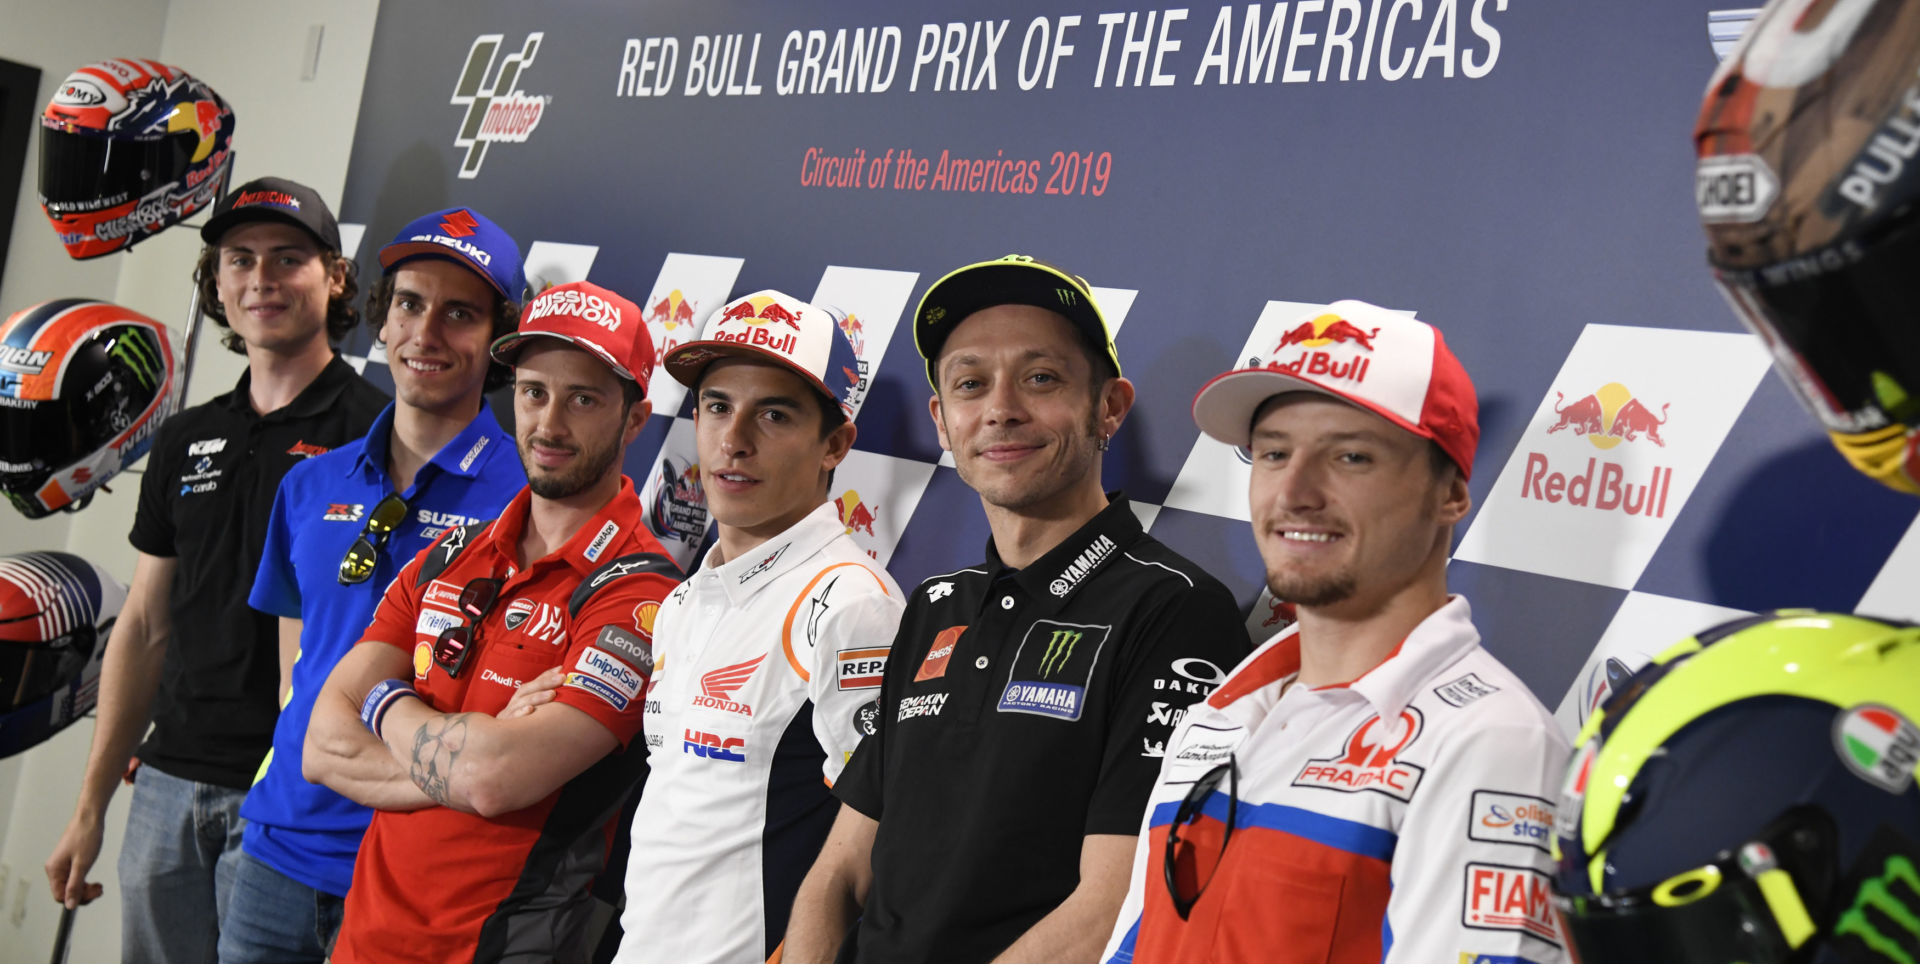 World Championship racers (from right) Jack Miller, Valentino Rossi, Marc Marquez, Andrea Dovizioso, Alex Rins, and Joe Roberts during the pre-event press conference at Circuit of The Americas in 2019. Photo courtesy of Dorna.